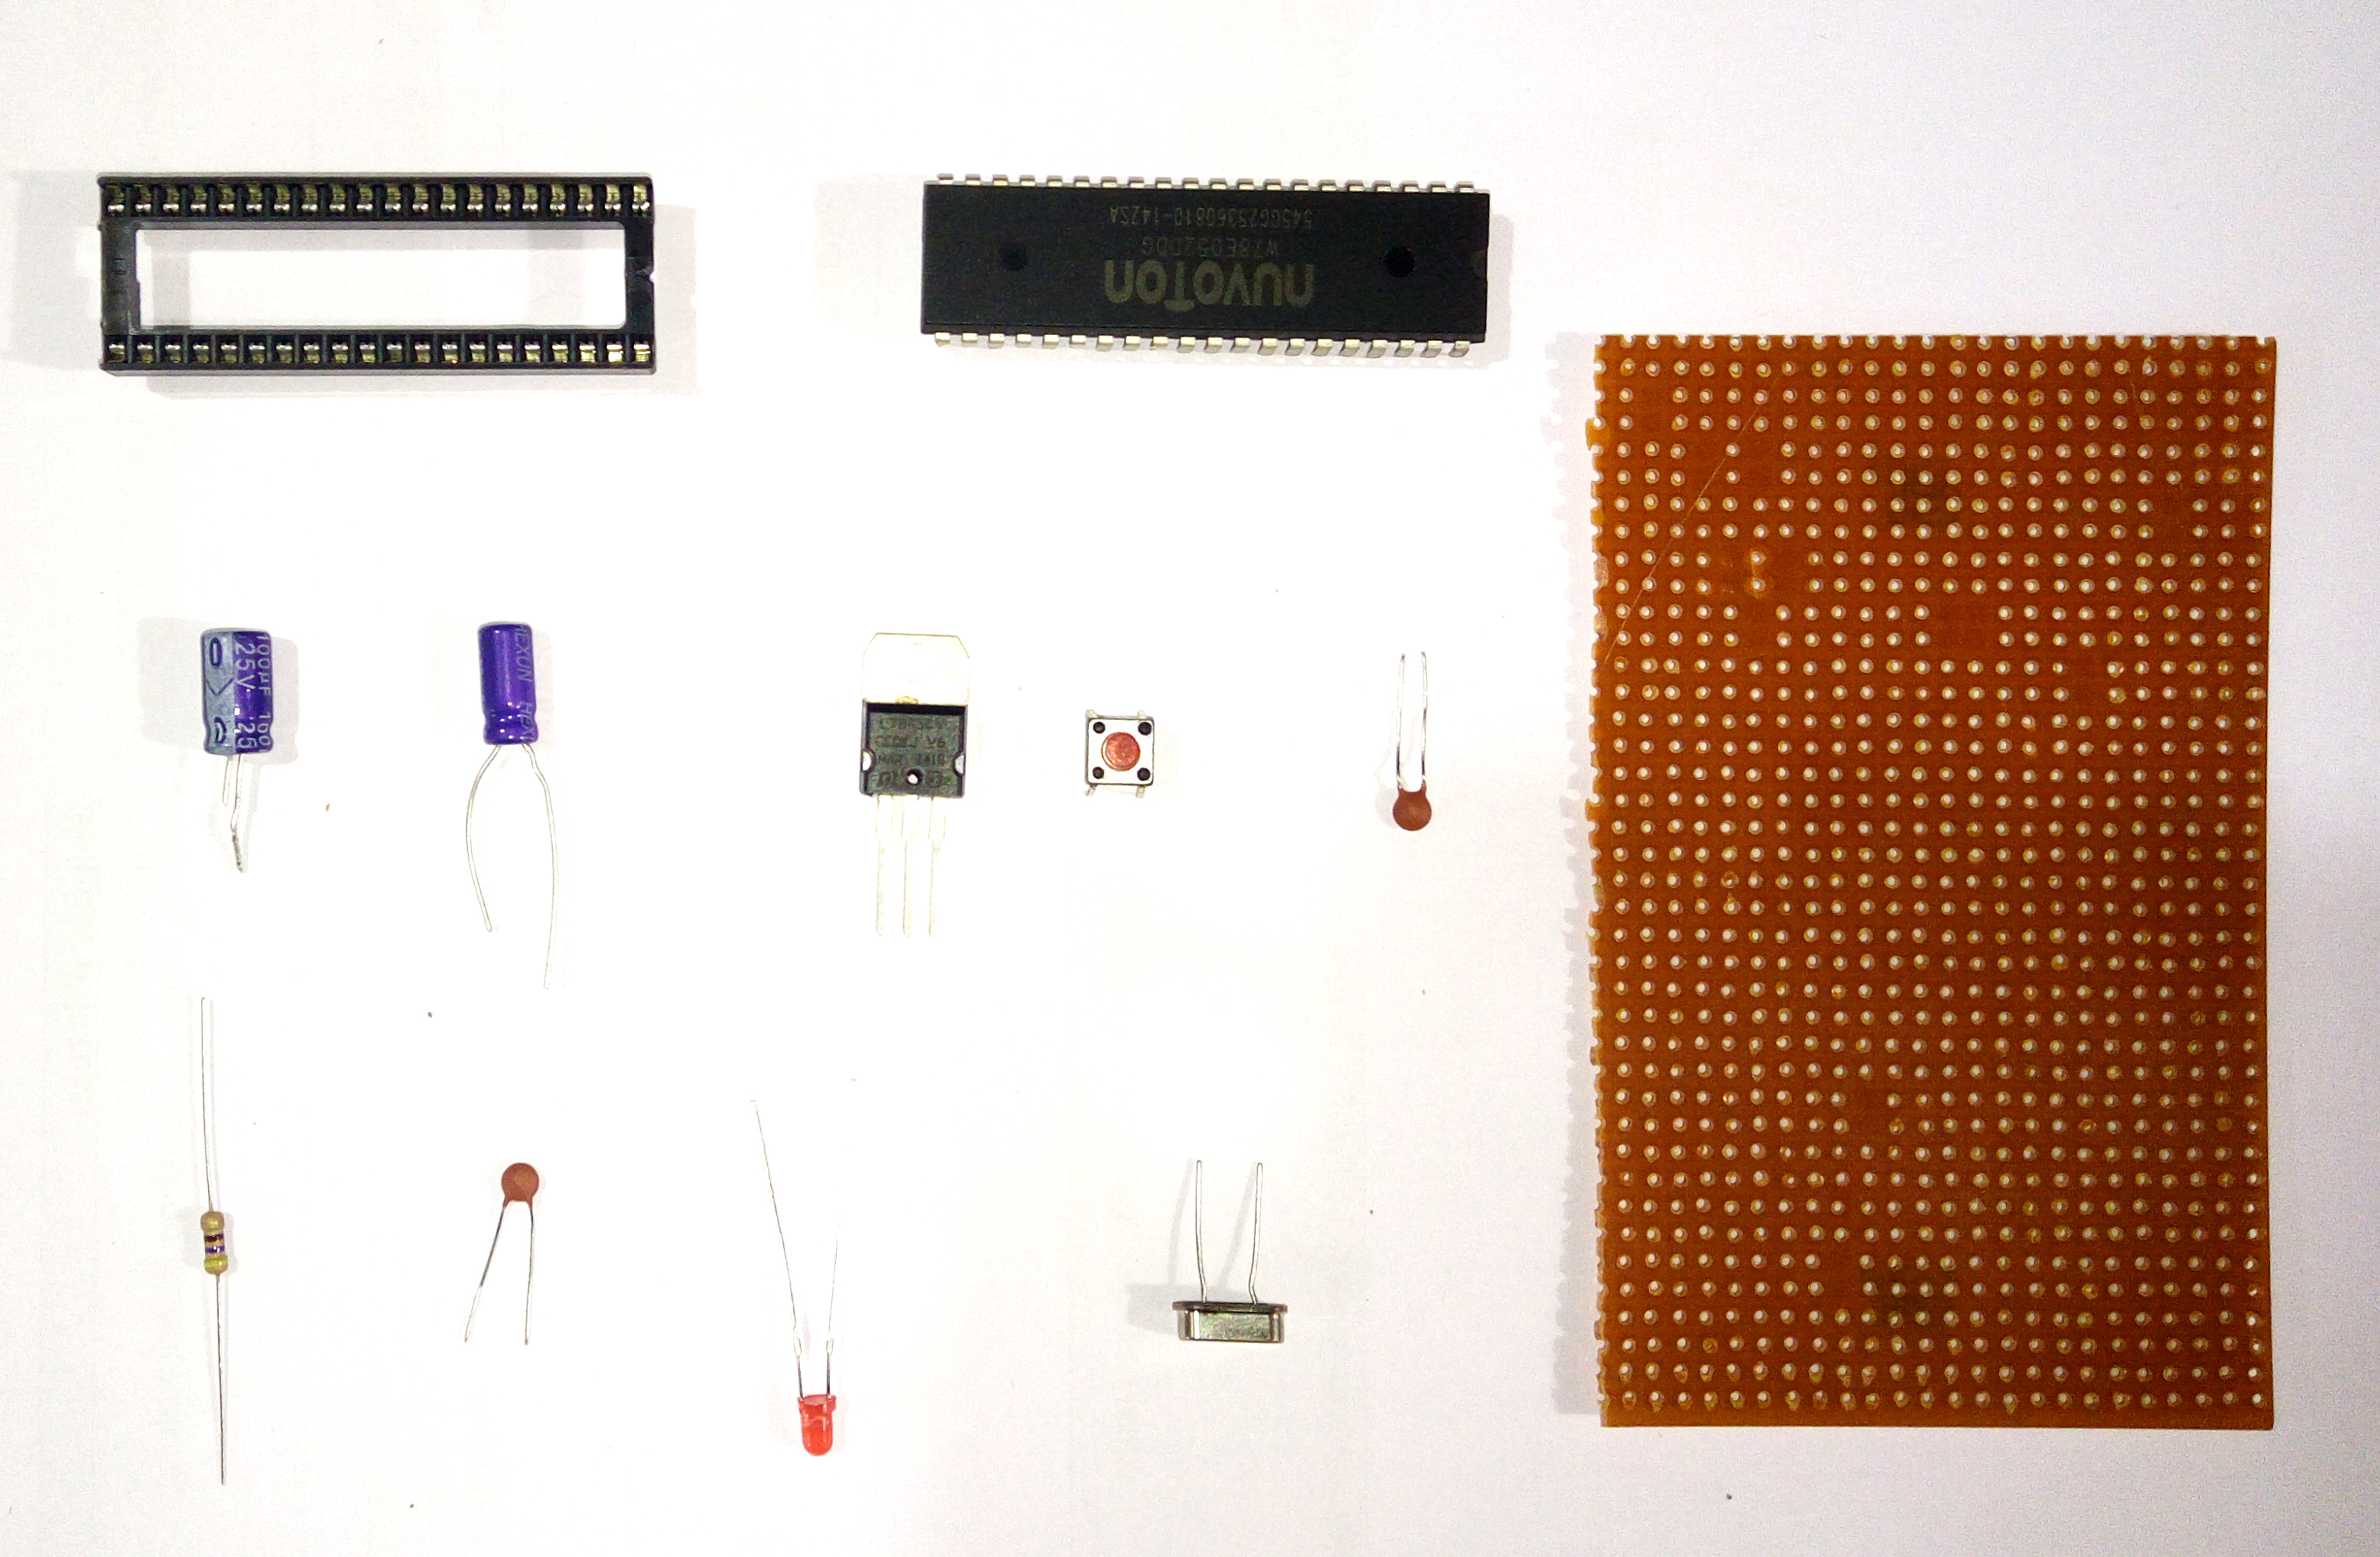 8051-microcontroller-development-board